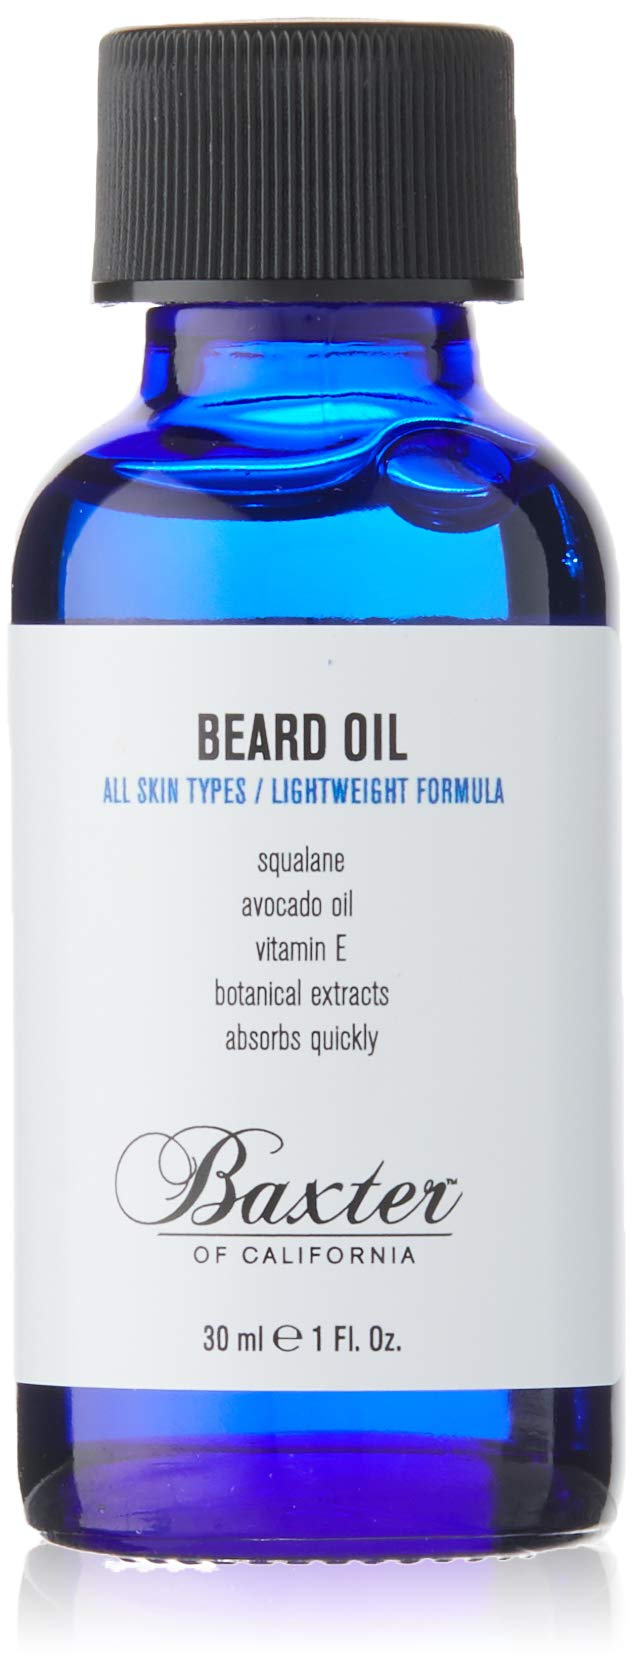 baxter of california beard oil, 1 oz.